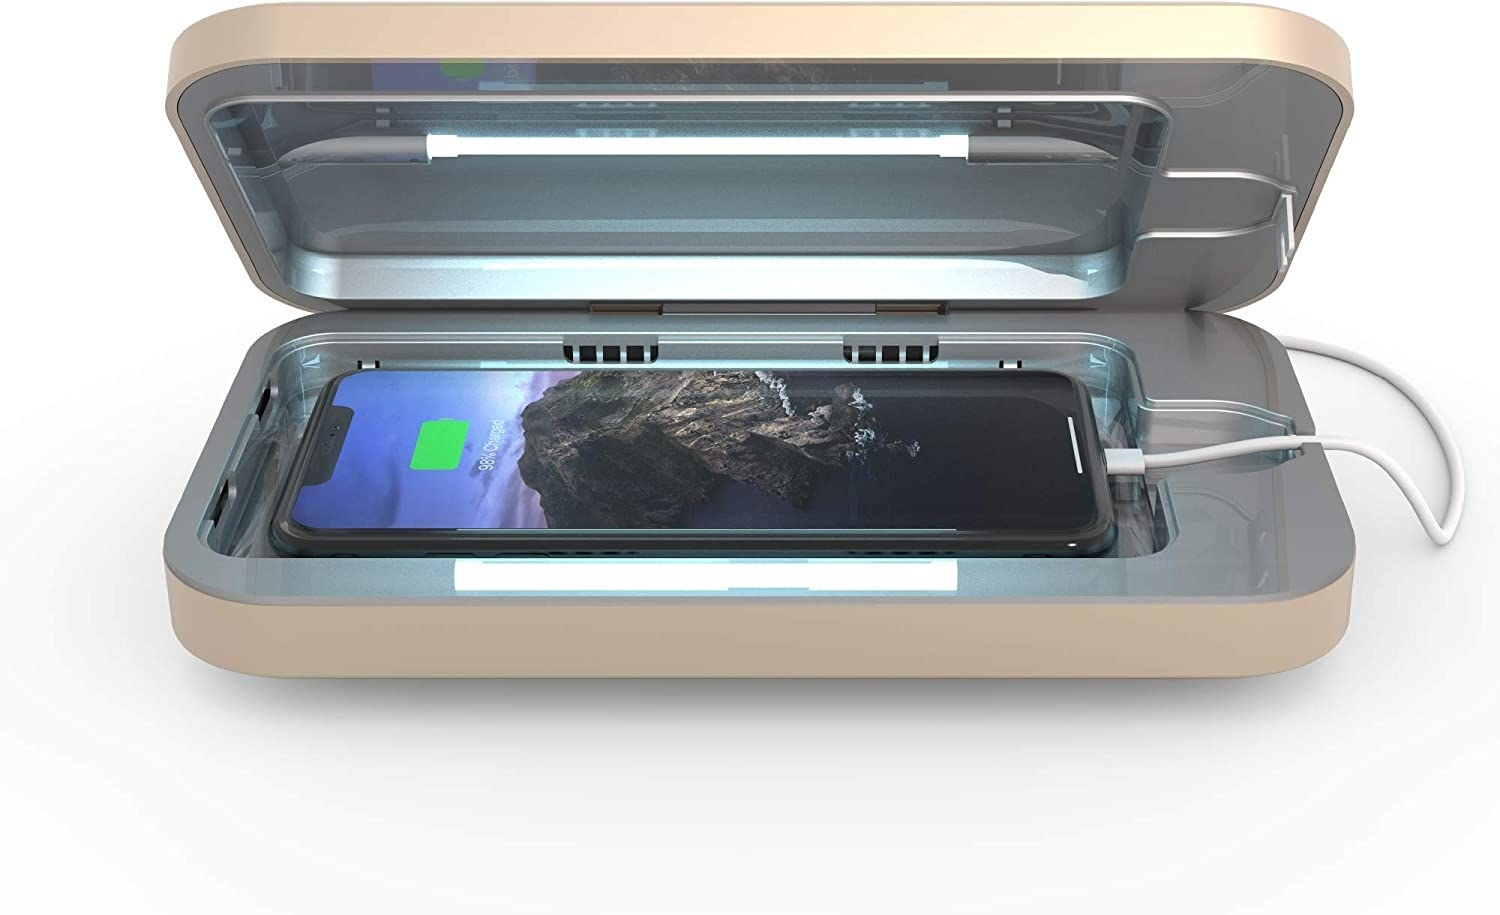 open Phonesaop gadget with a phone nested inside it and charging